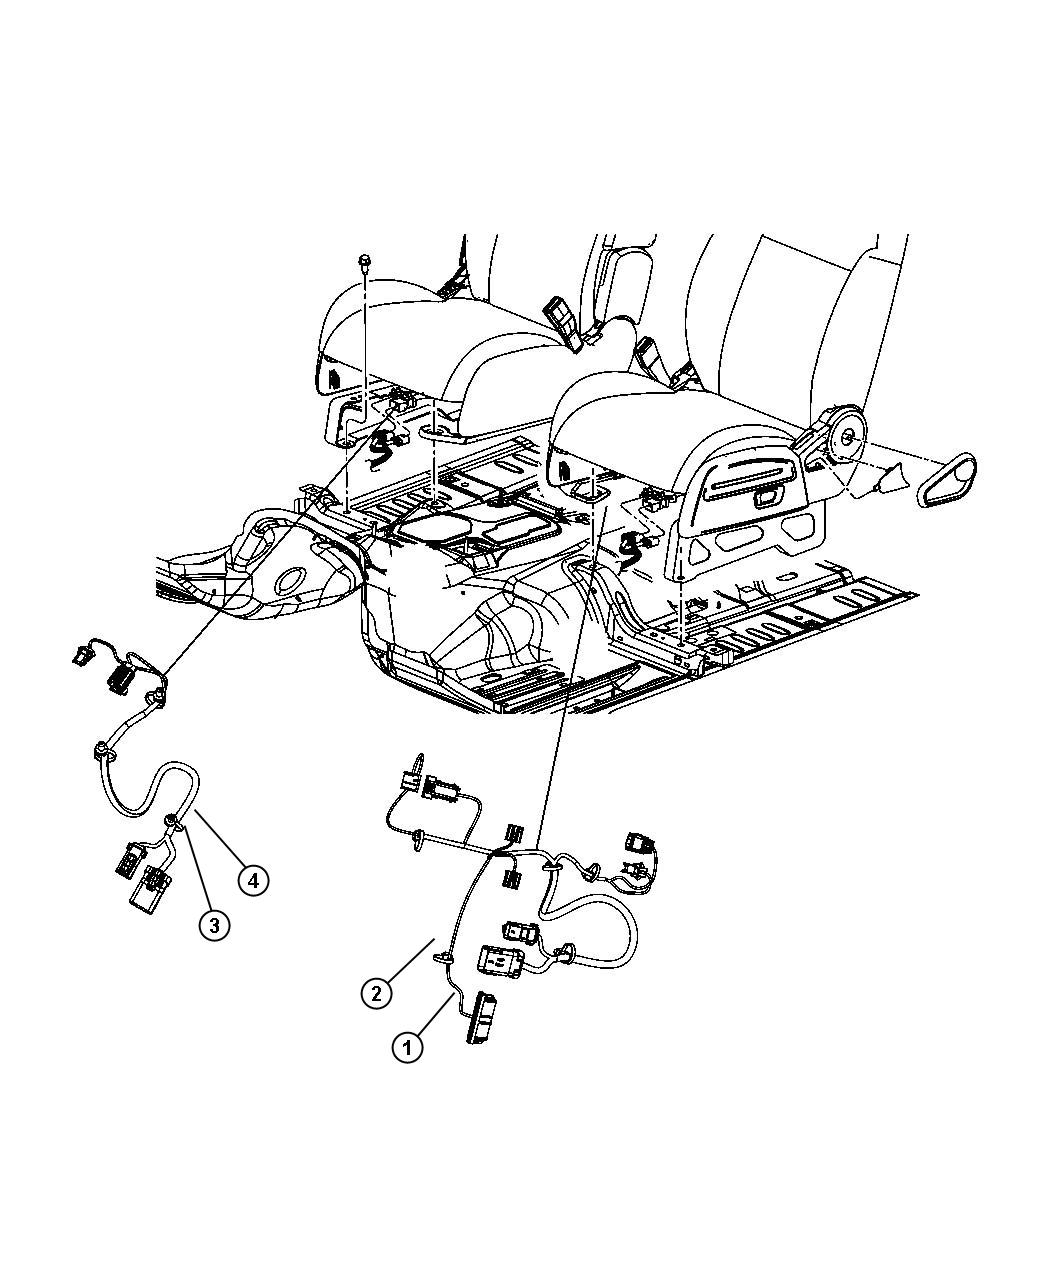 Jeep Liberty Wiring. Power seat. Export. Power, heated